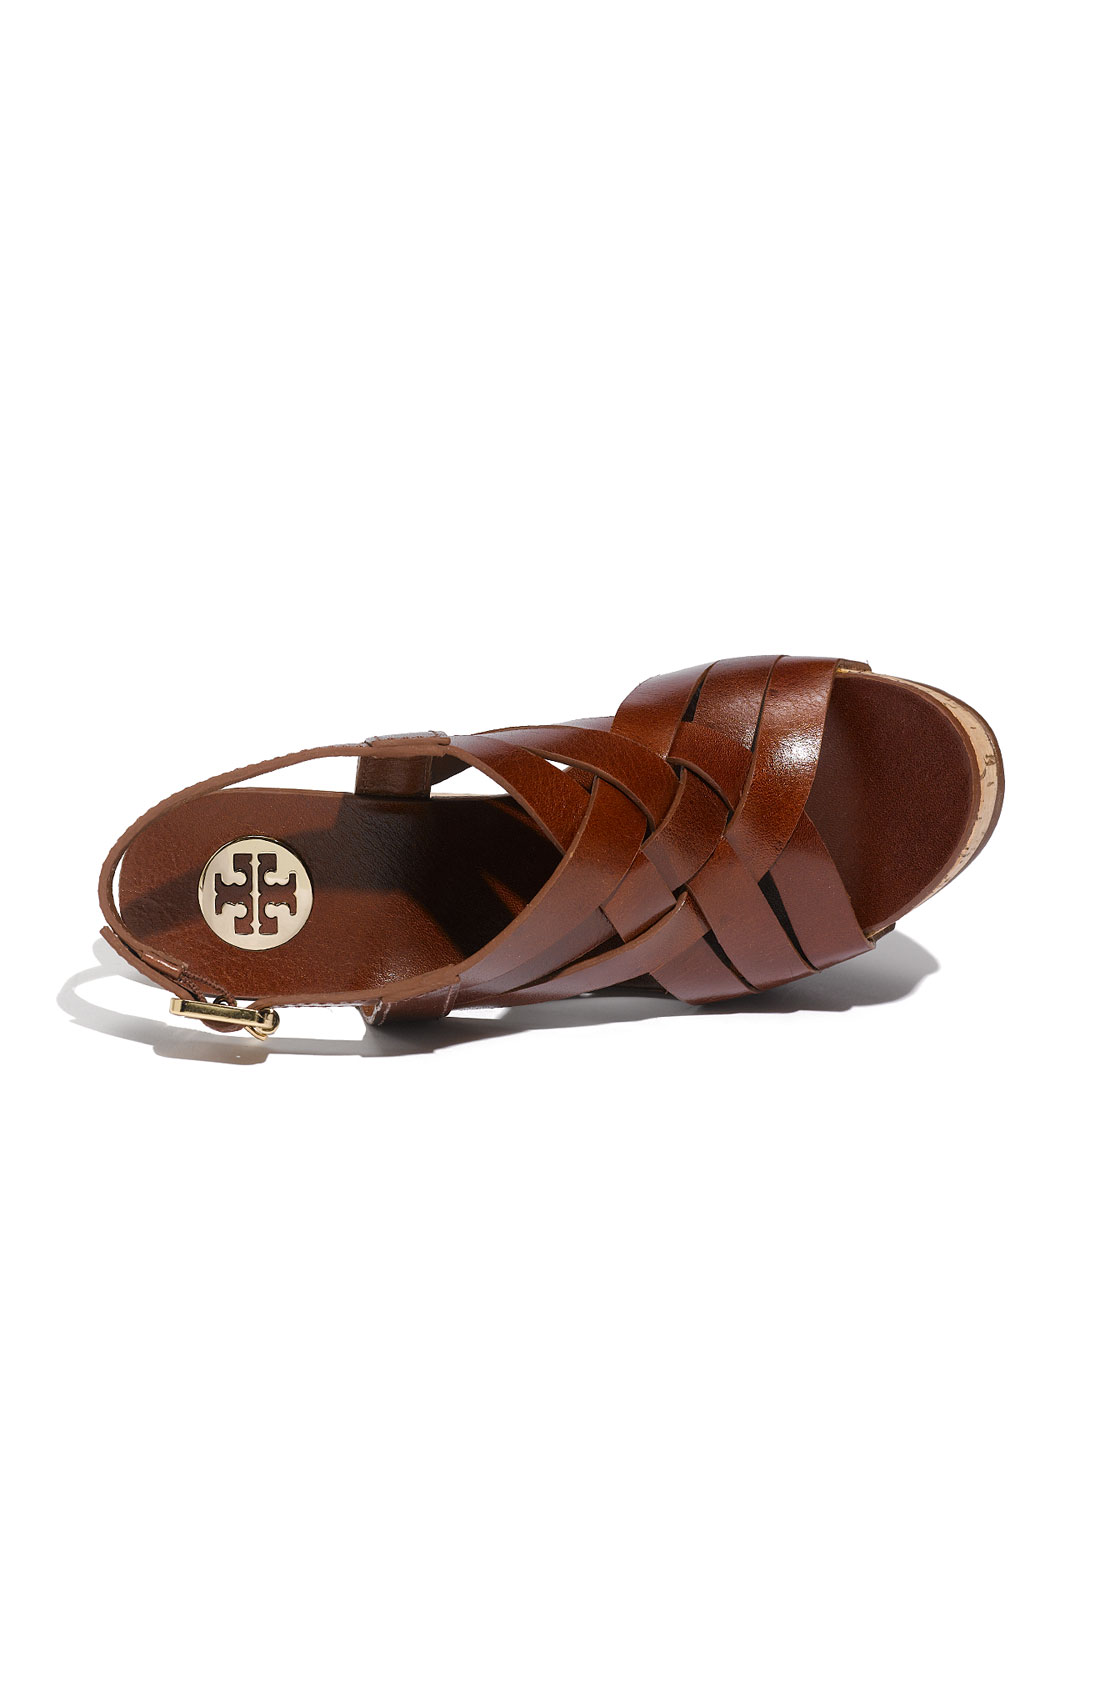 530861039090 Lyst - Tory Burch Ace Wedge Sandal in Brown